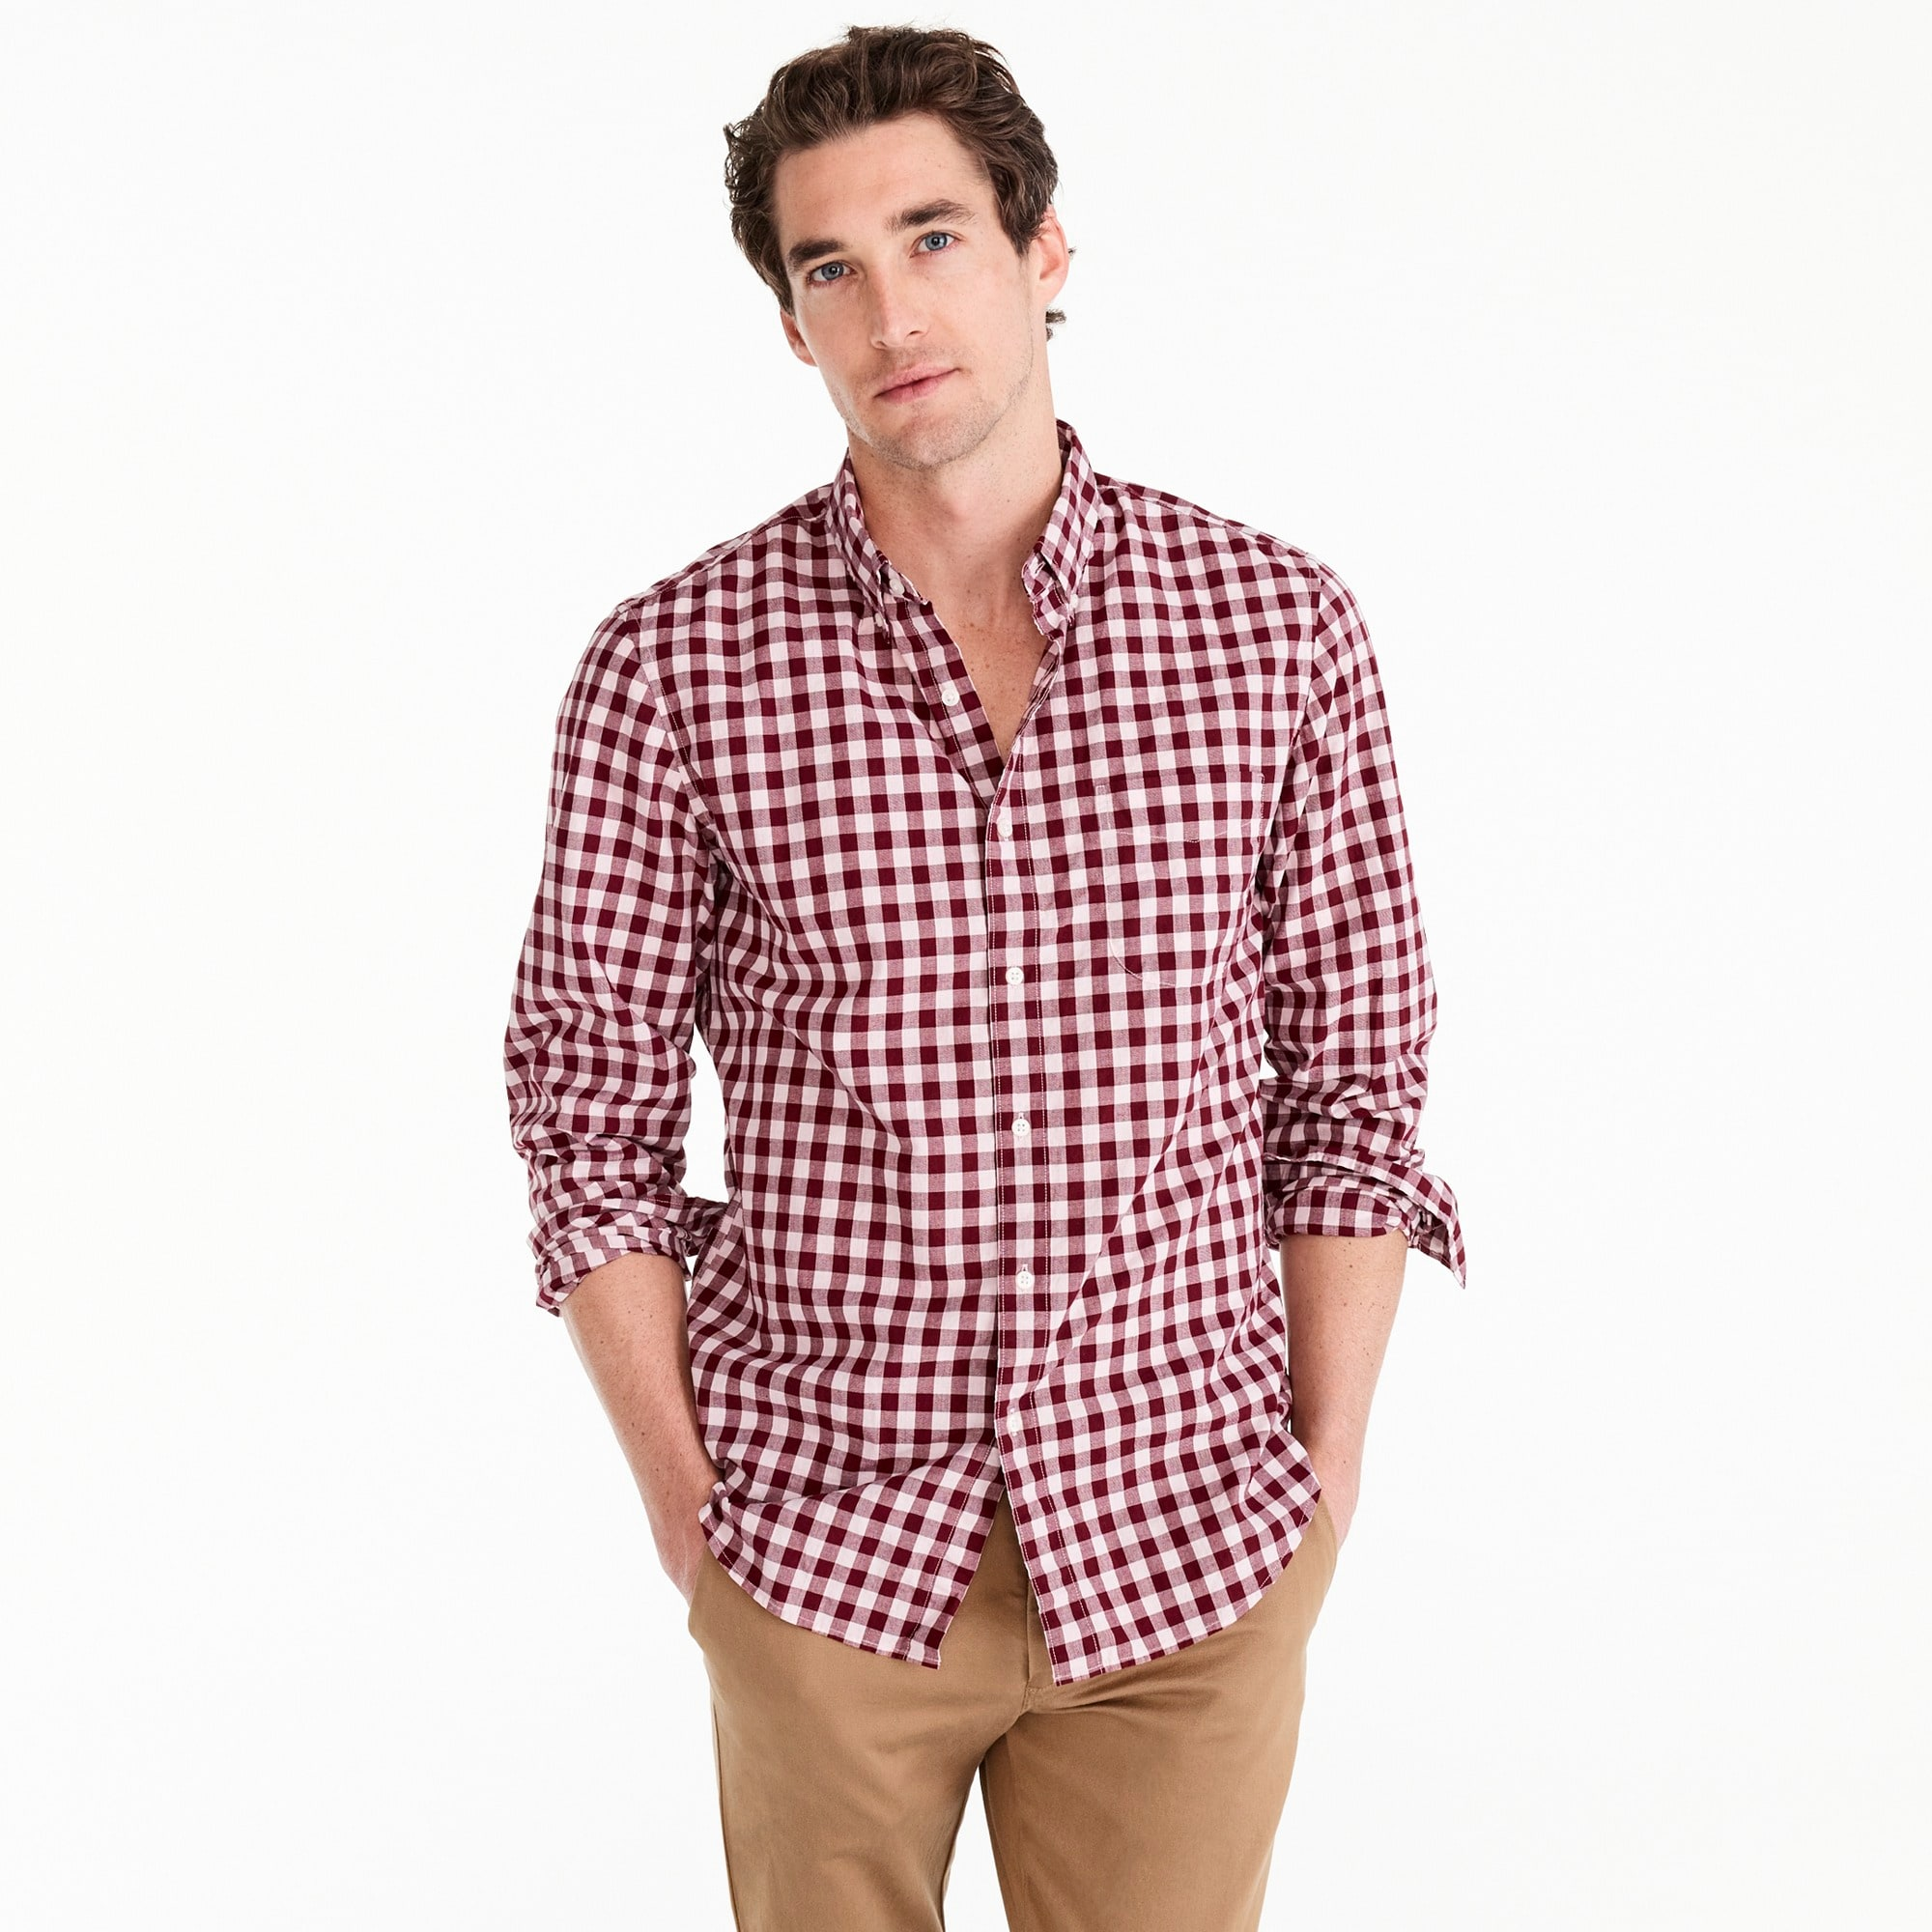 Image 2 for Untucked stretch Secret Wash shirt in heather poplin gingham